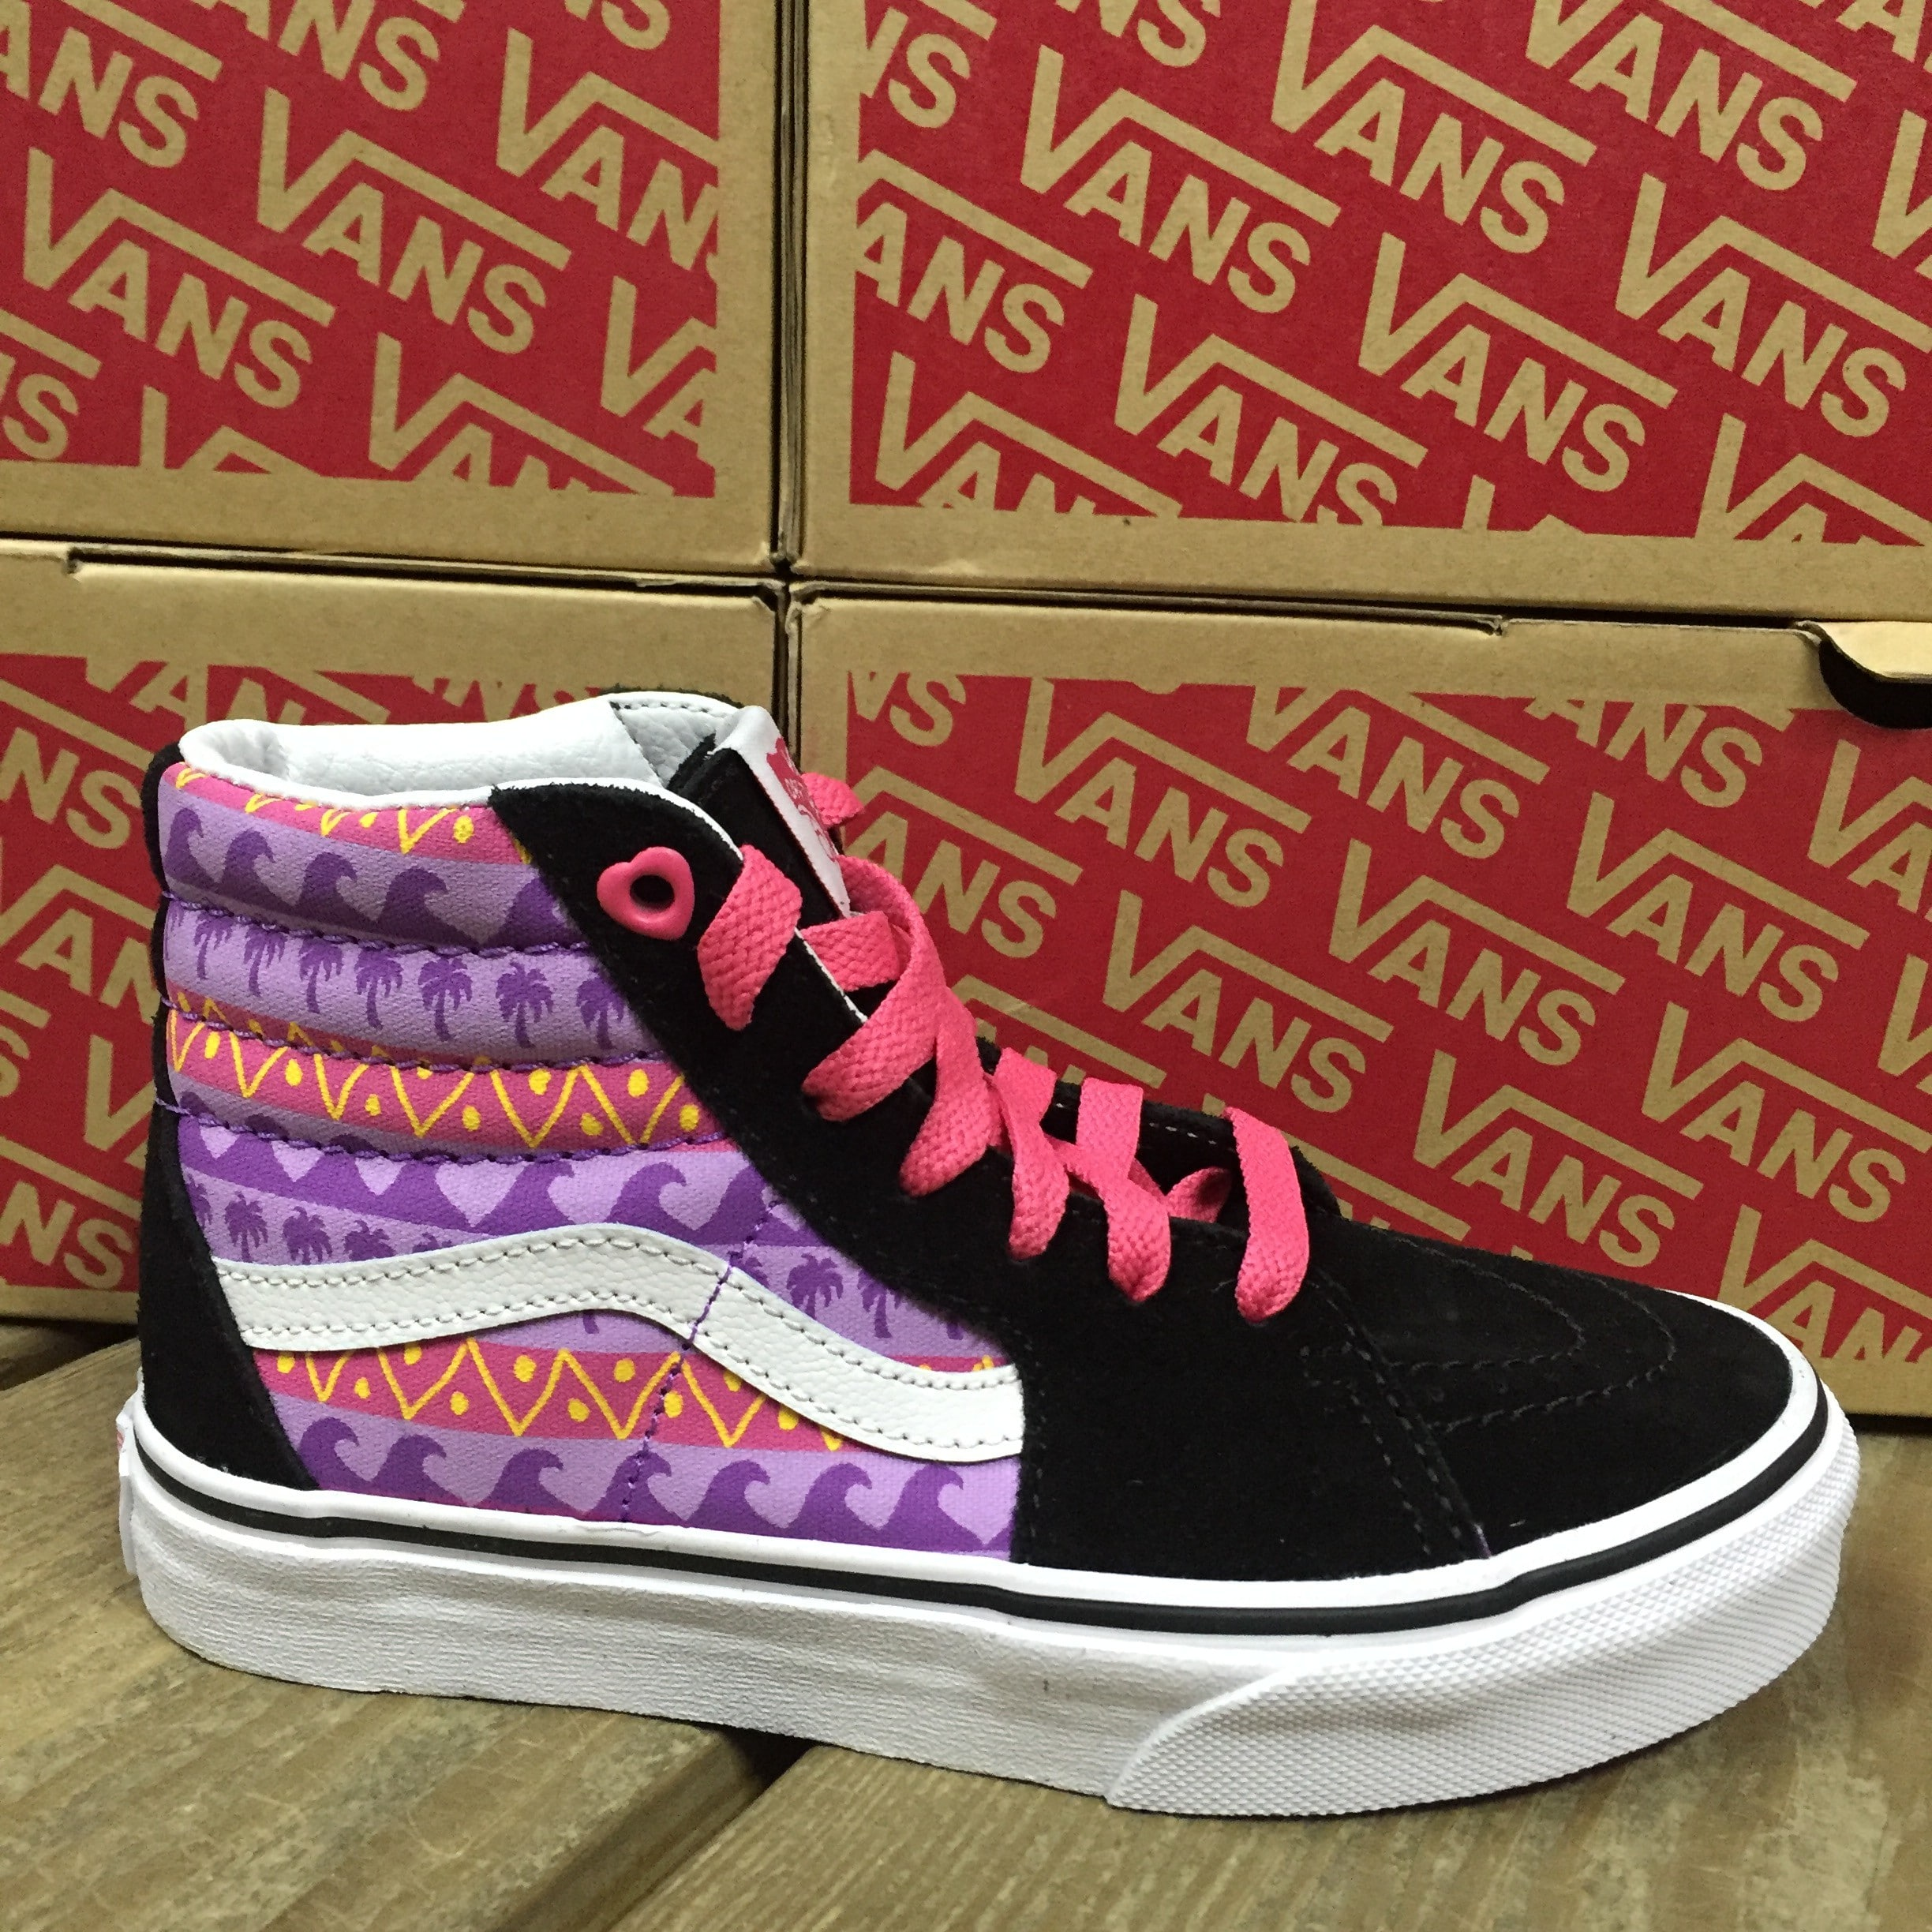 28efdda6d7 Celebrate Vans 50th with some festive new colors!